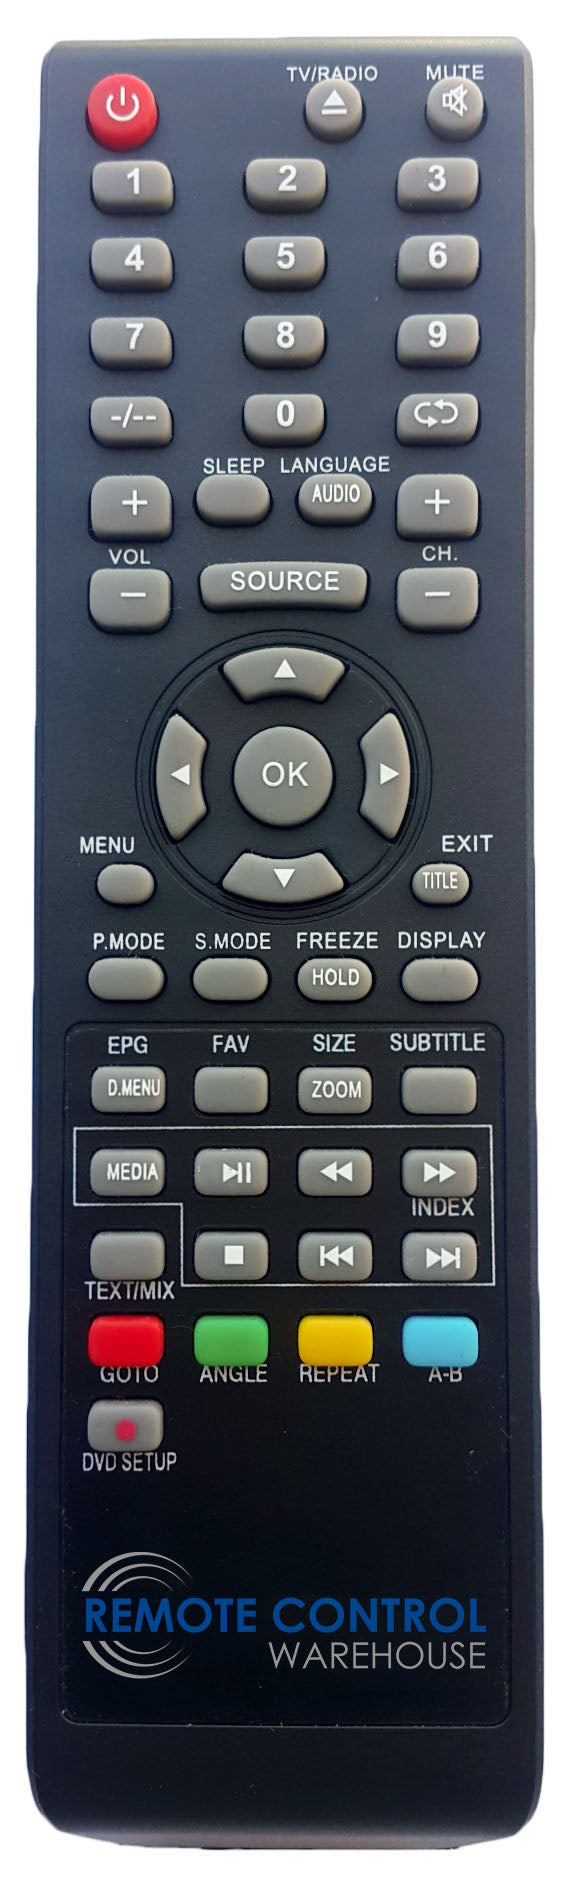 REPLACEMENT REGAL REMOTE CONTROL - AT-23LEC1 AT23LEC1 LCD TV - Remote Control Warehouse